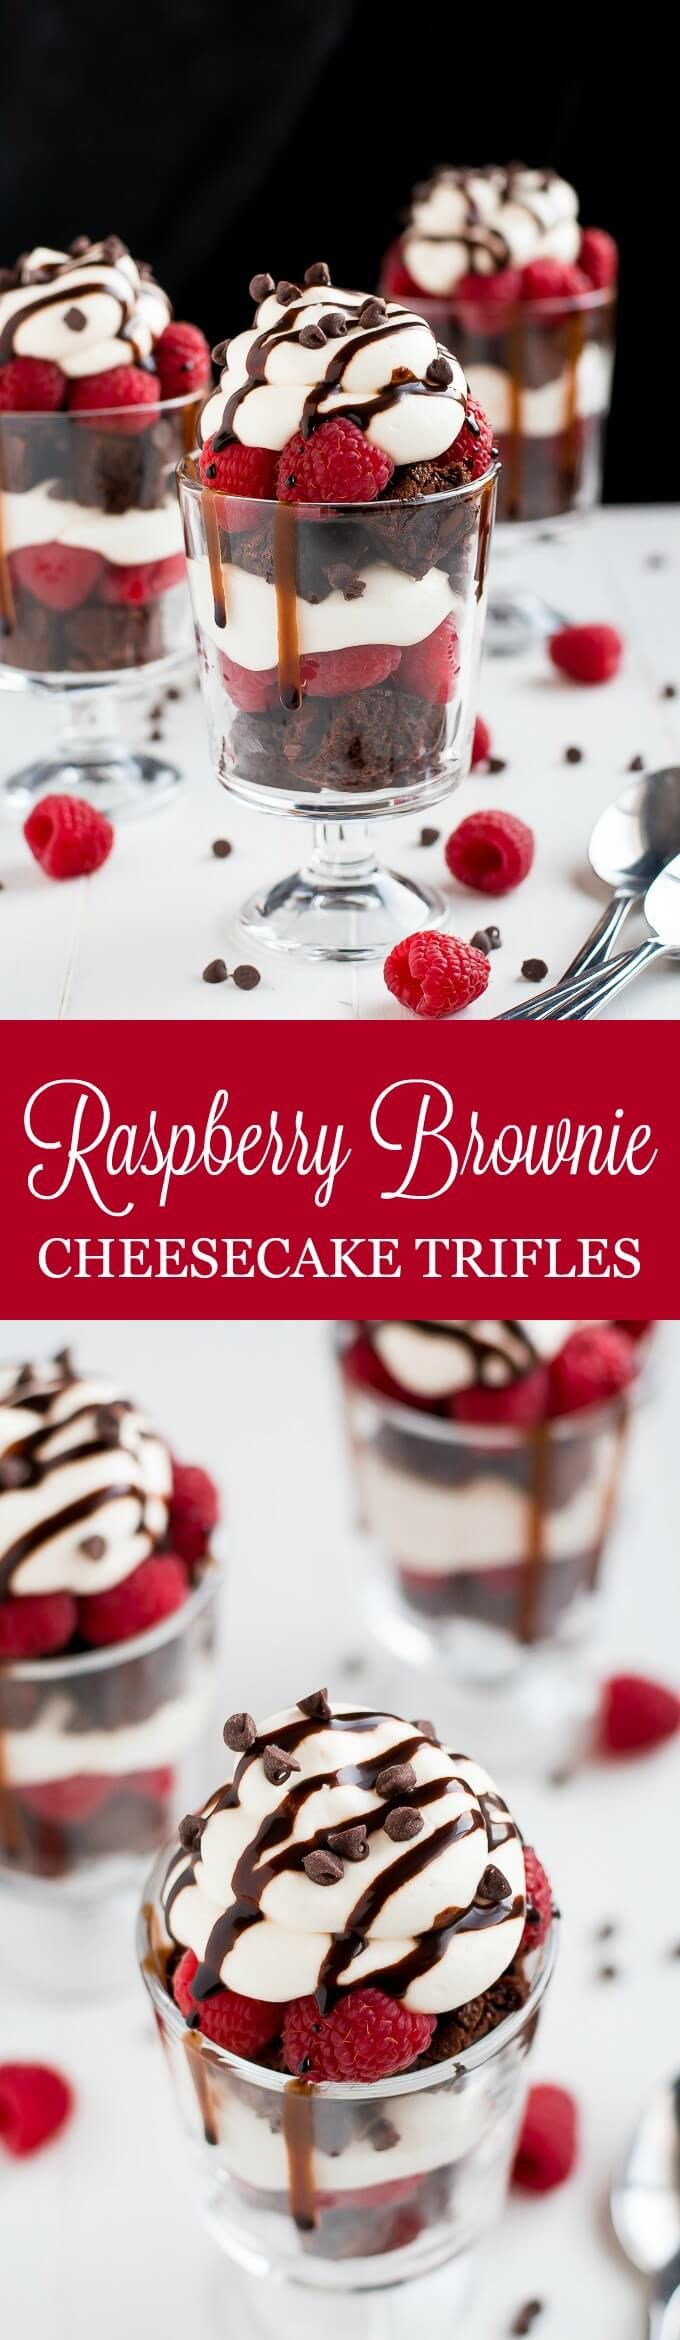 """Nothing says """"love"""" quite like these Raspberry Brownie Cheesecake Trifles made with rich chocolate made-from-scratch chocolate chip brownies, easy no-bake cheesecake filling, and fresh sweet raspberries. #chocolate #cheesecake #valentinesday #brownies"""